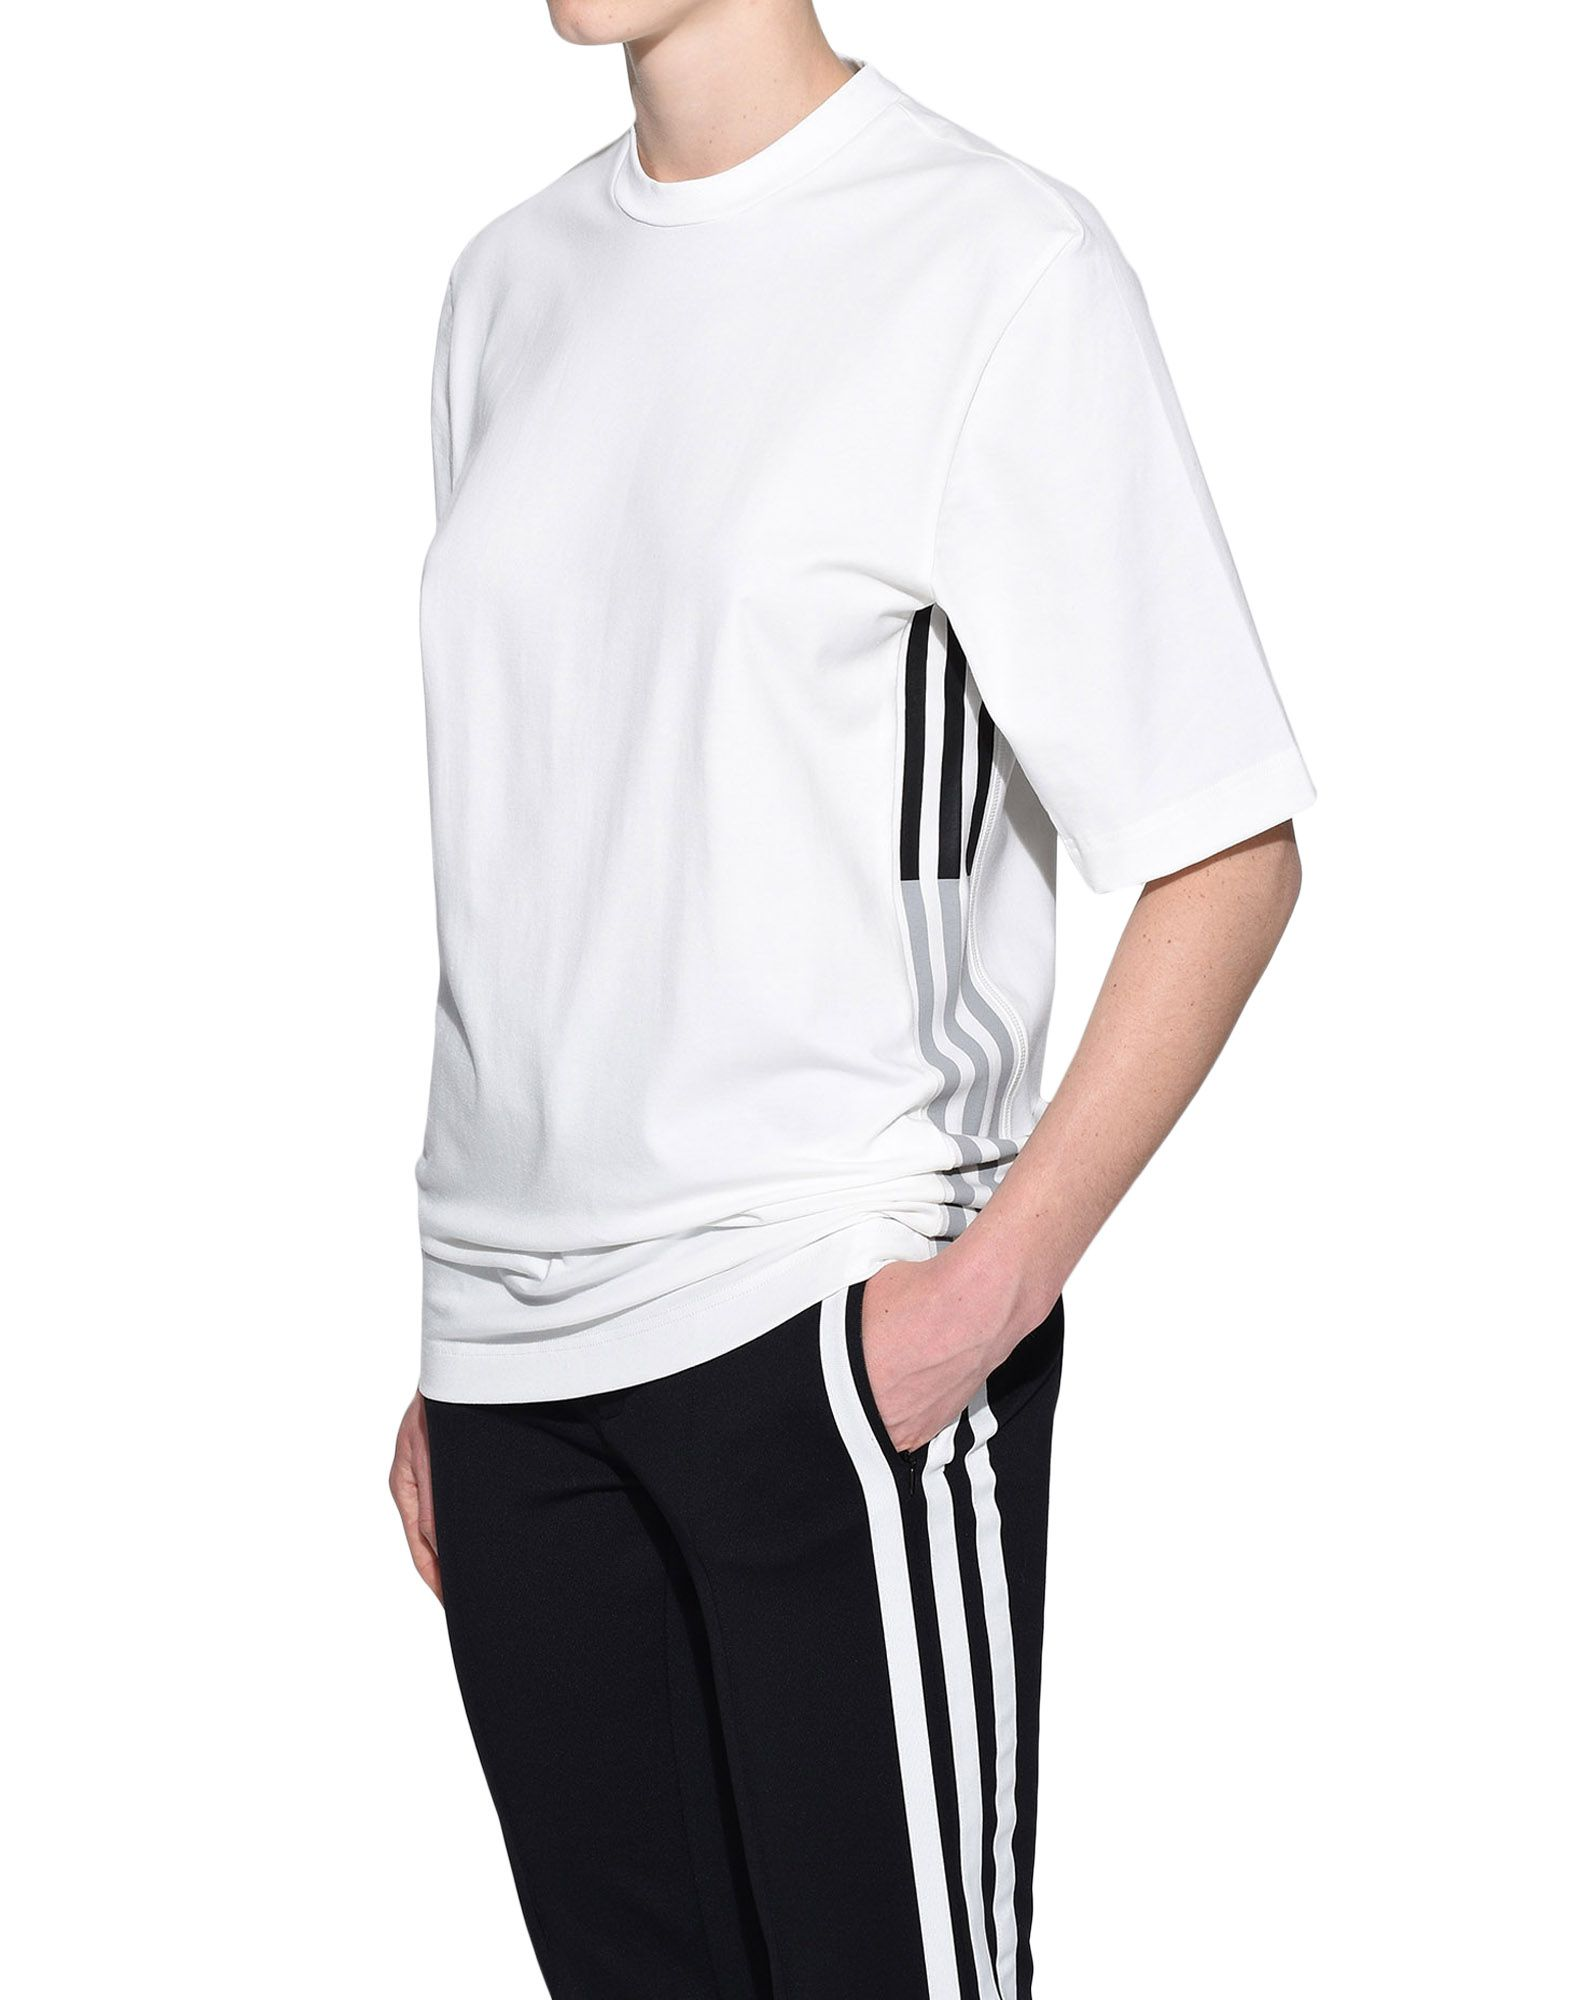 Y-3 Y-3 3-Stripes Tee Short sleeve t-shirt Woman e